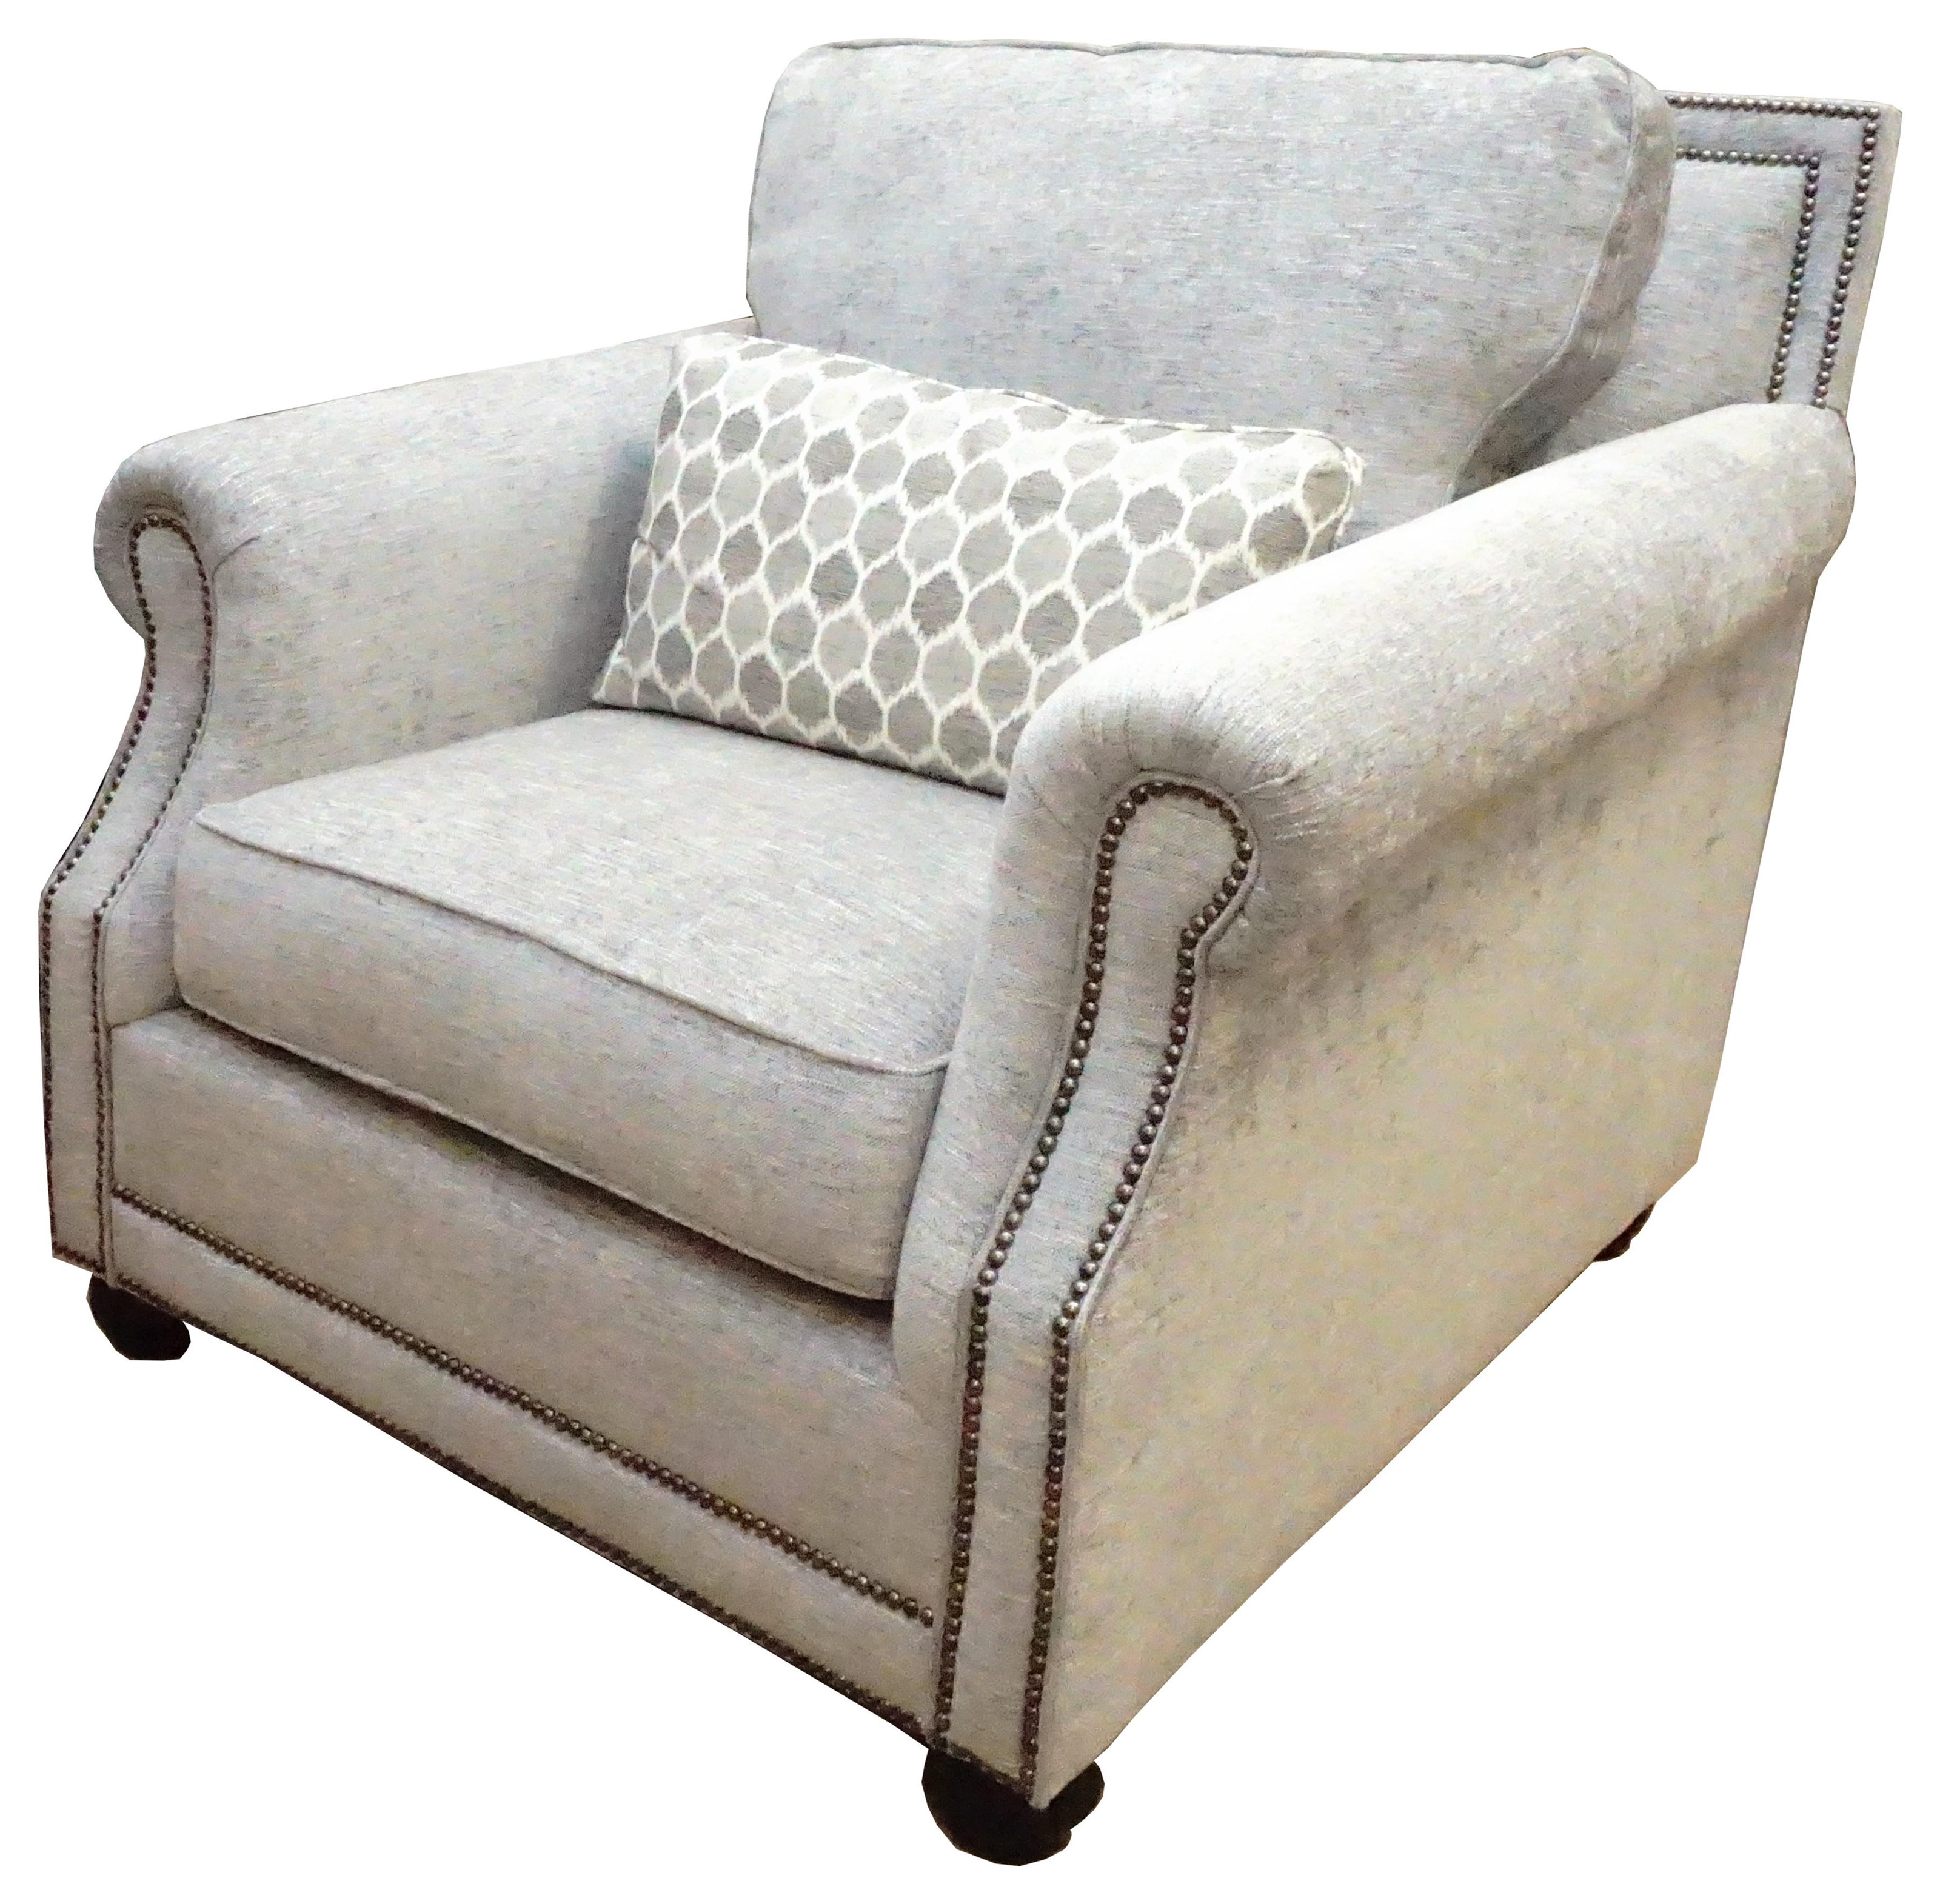 Julianna Julianna Chair by King Hickory at Godby Home Furnishings